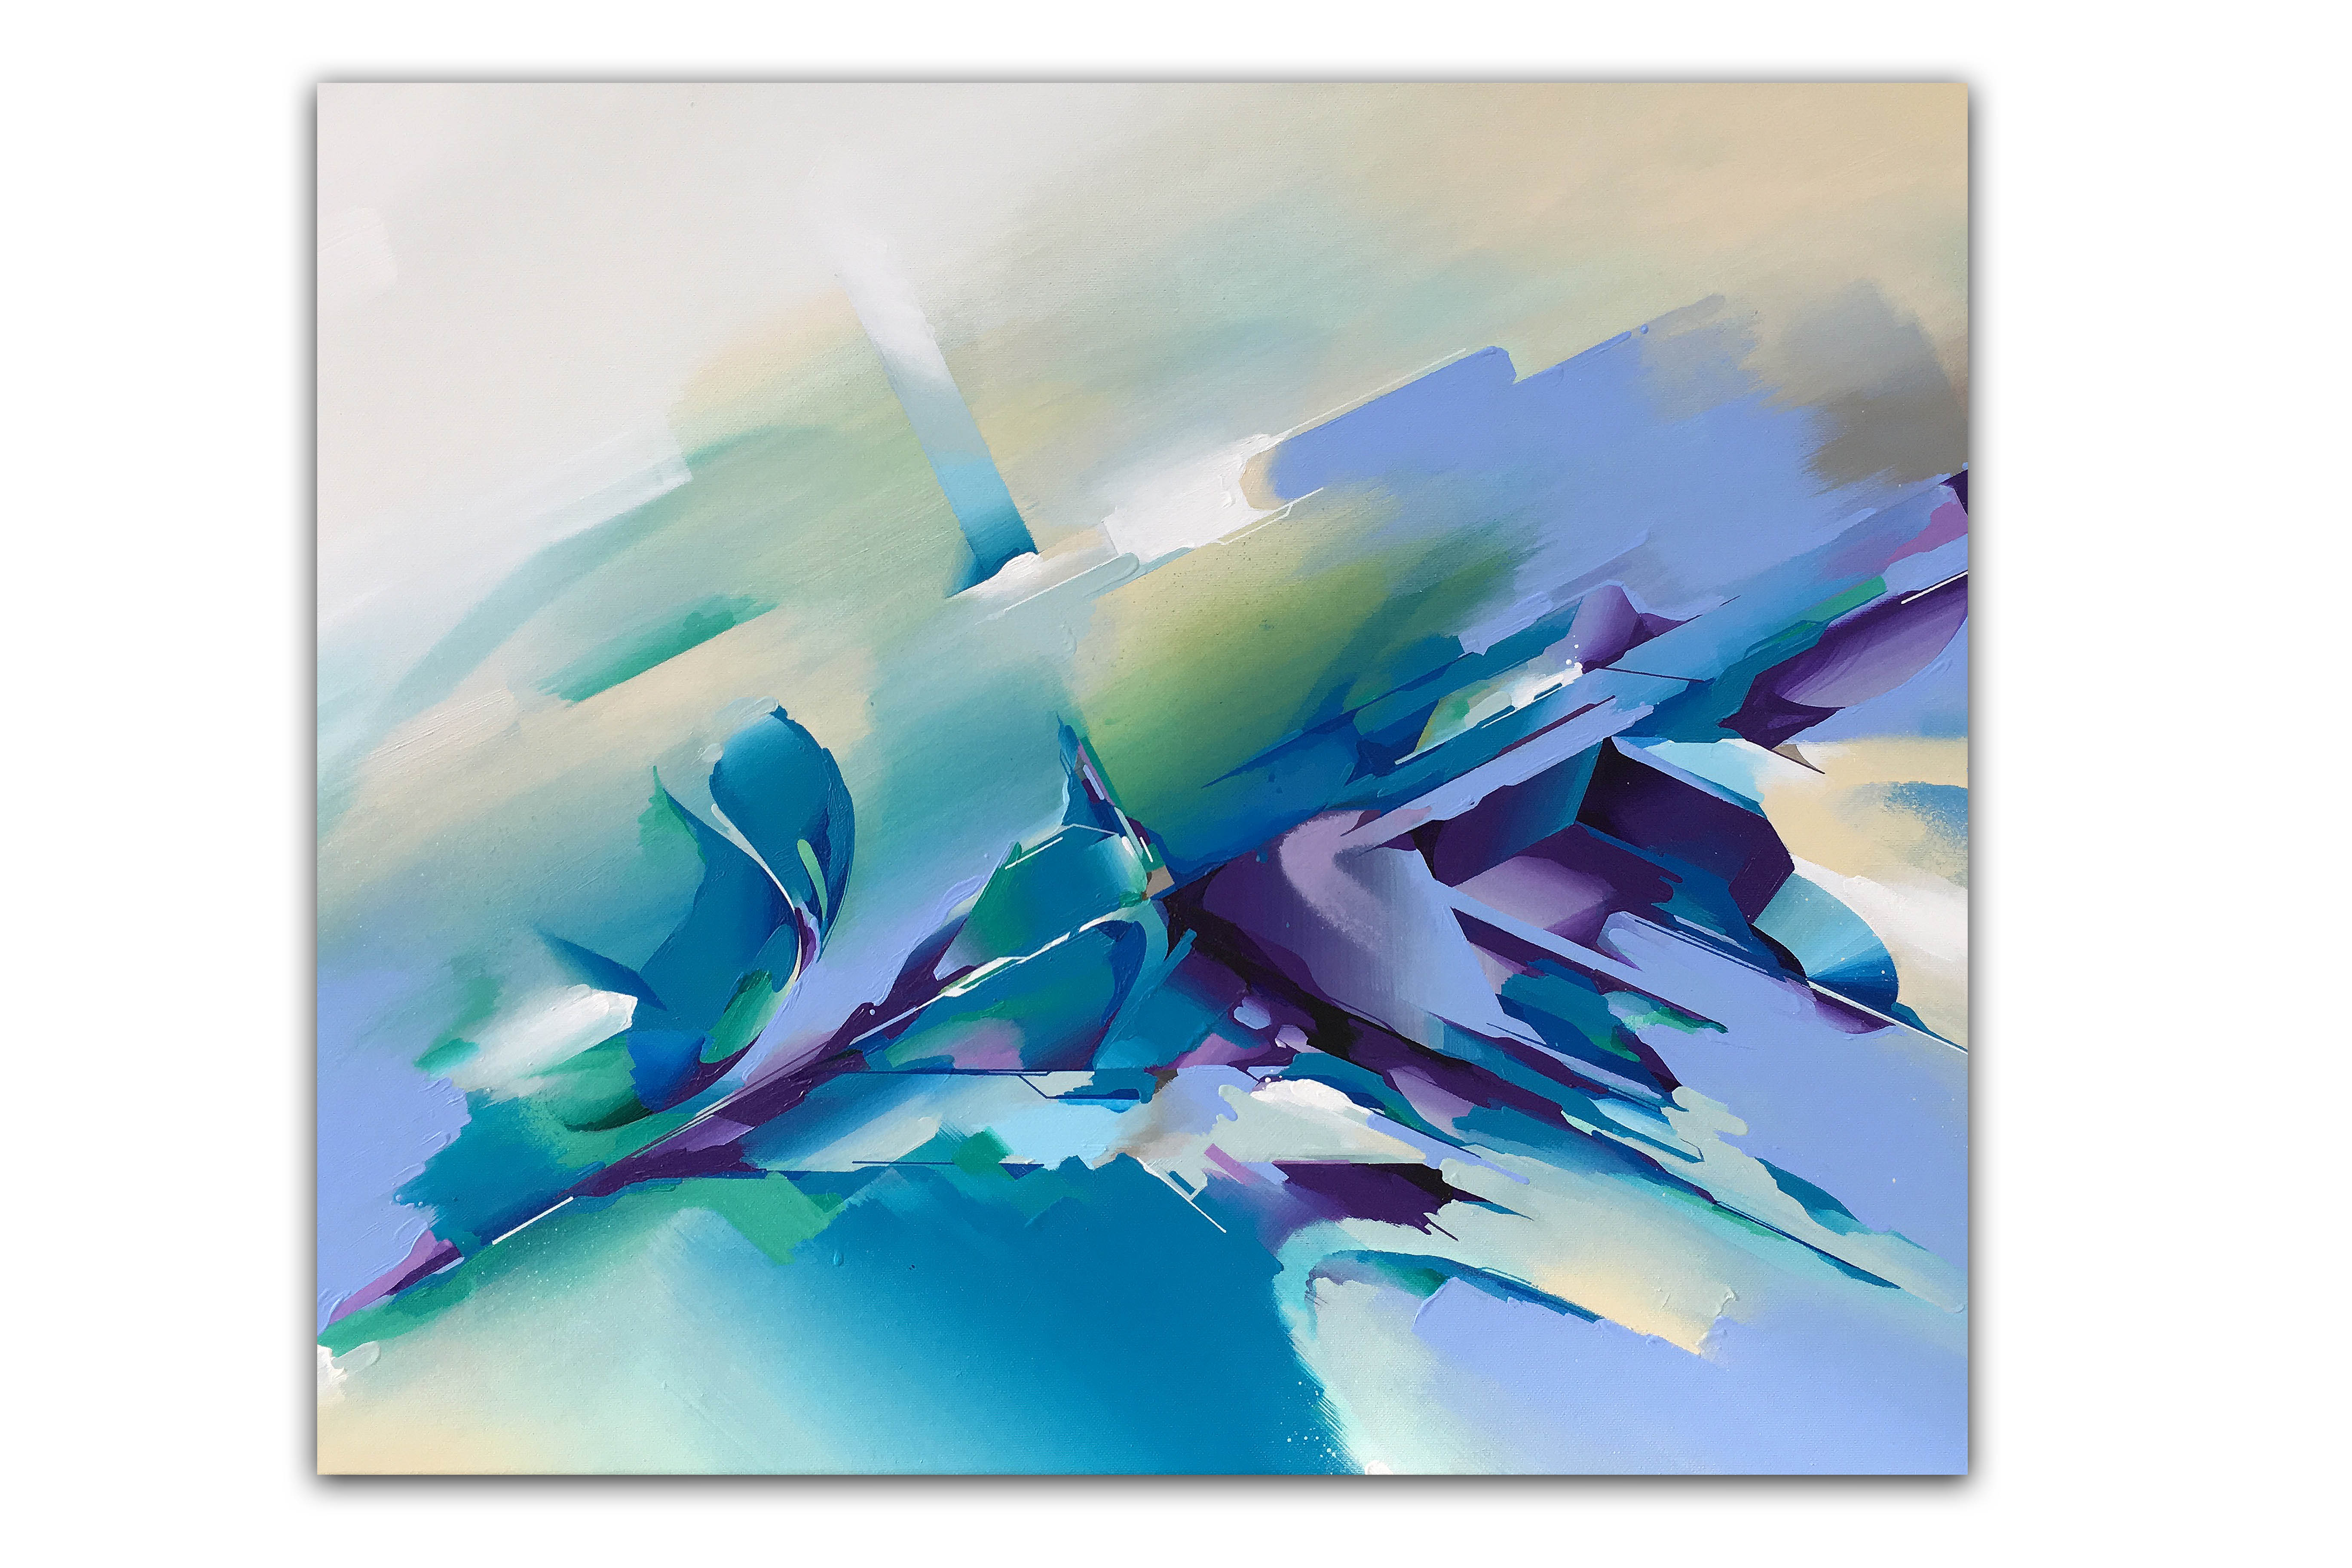 A work by Does - Canvas_'Violet Hill'_50X60cm